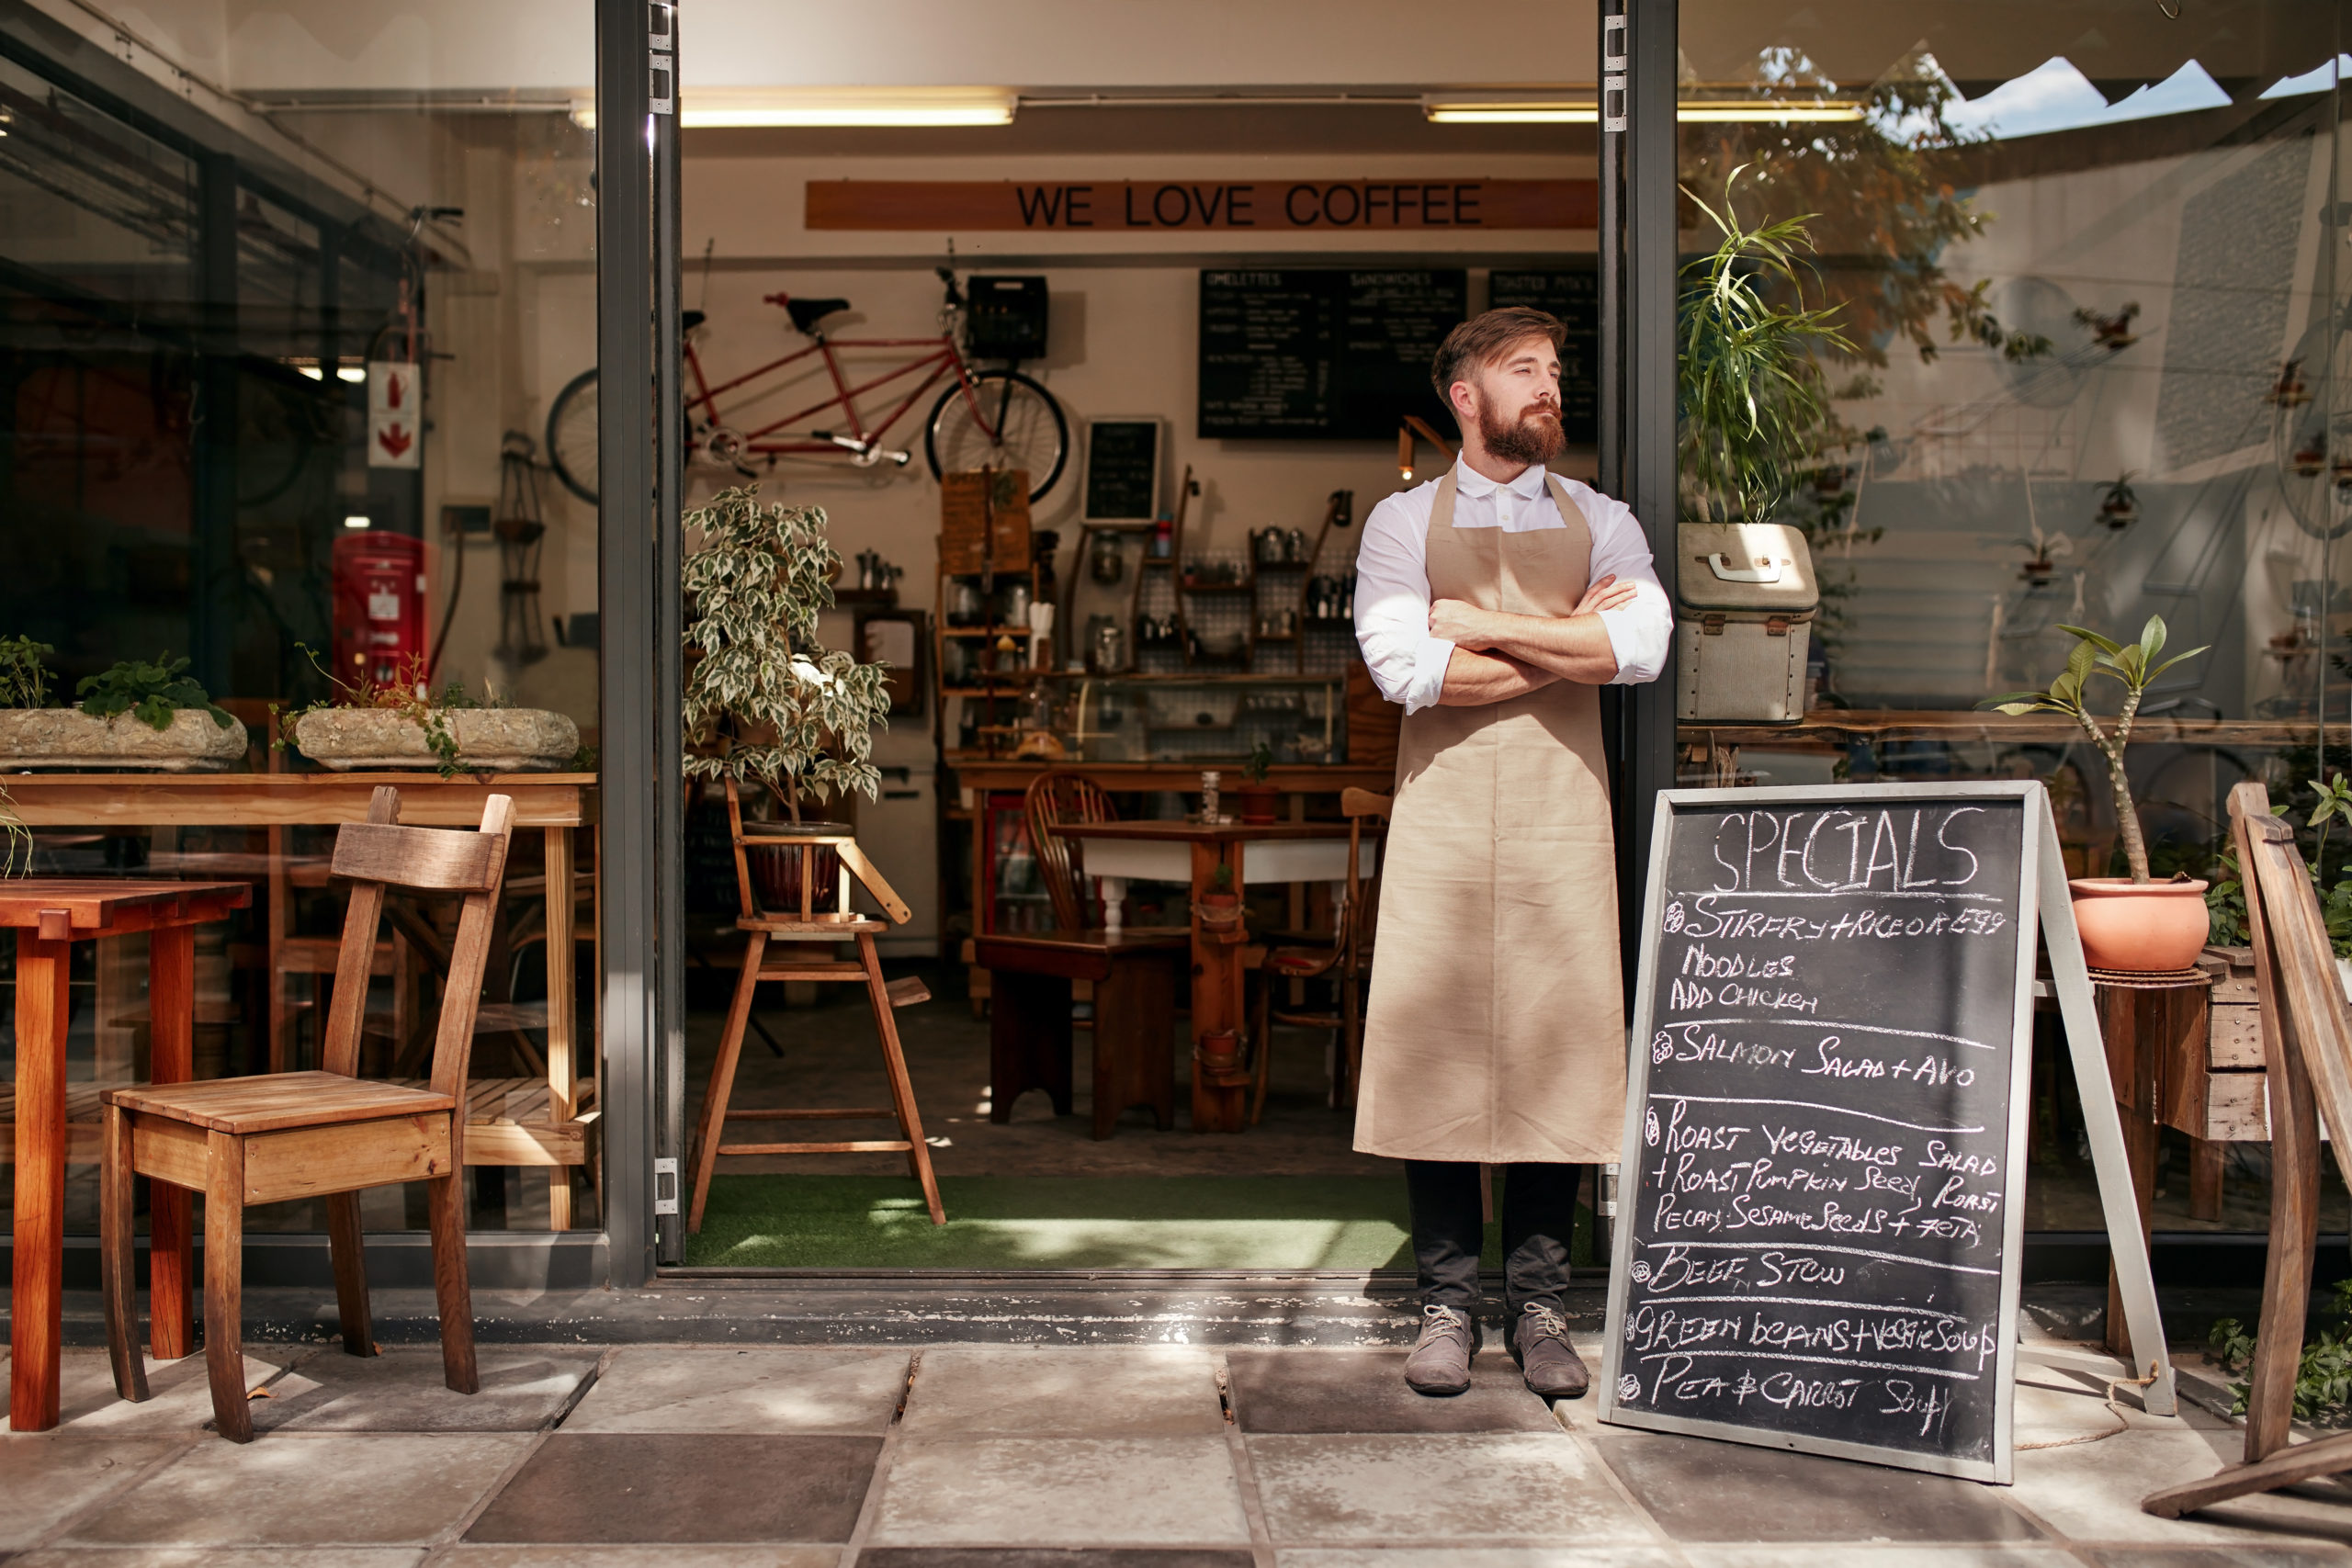 We've found the best small restaurant promotion ideas come from the heart